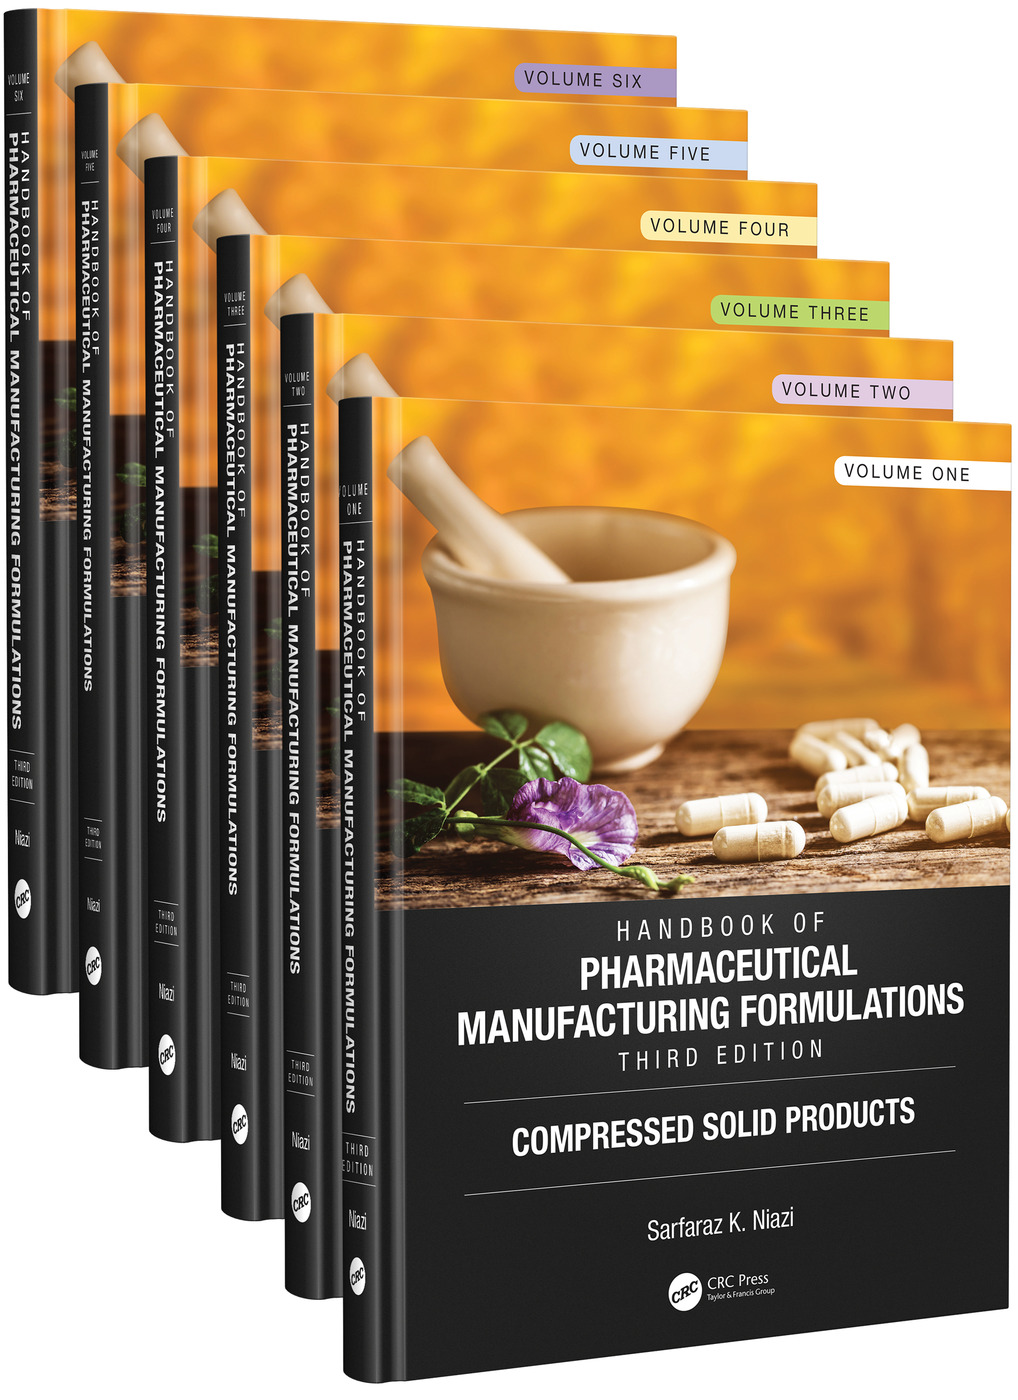 Handbook of Pharmaceutical Manufacturing Formulations, Third Edition book cover